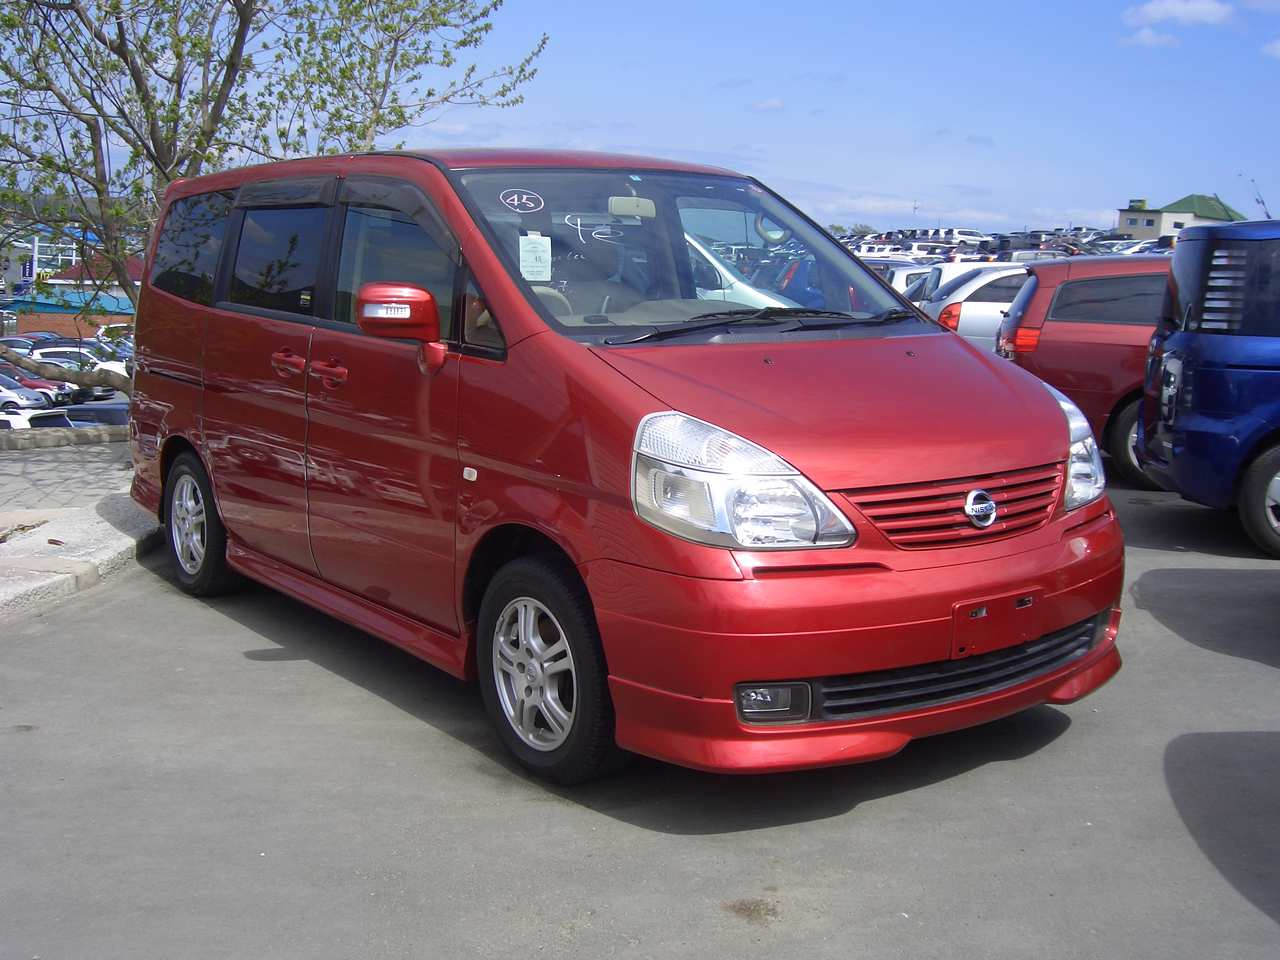 Car Carrier Height 2004 Nissan Serena Specs Engine Size 2000cm3 Fuel Type